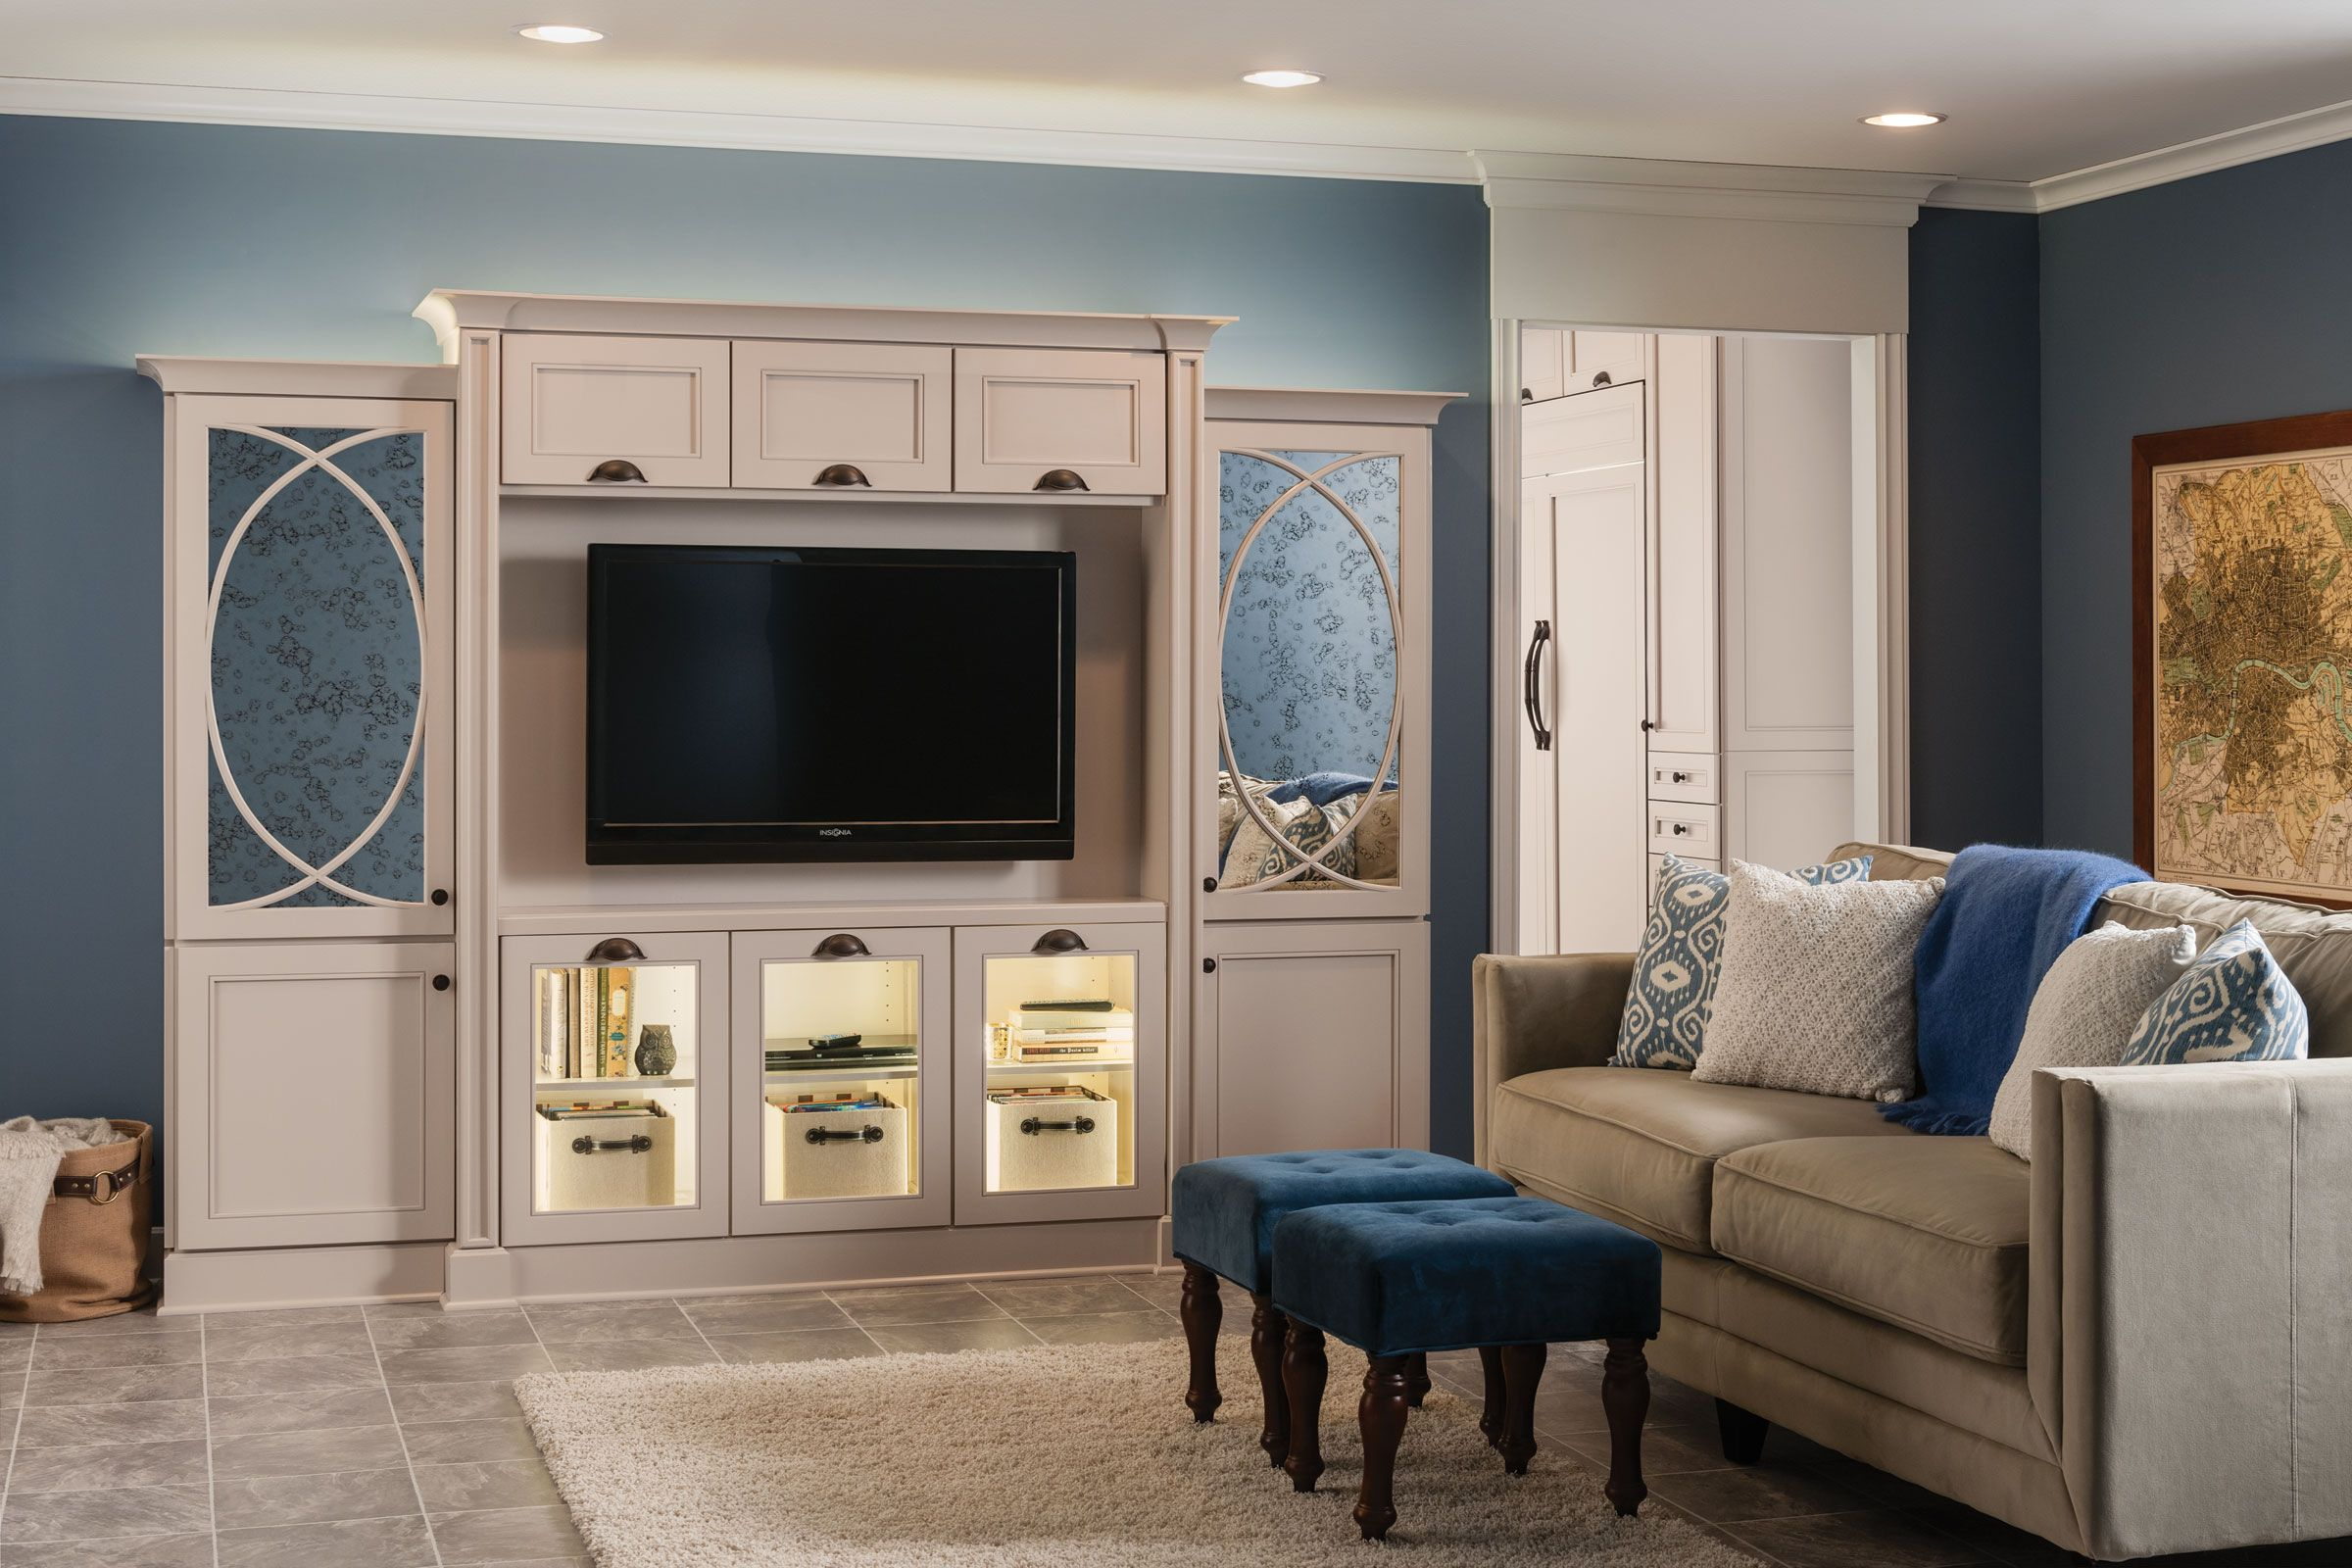 An entertainment center finished in kraftmaids chai paint